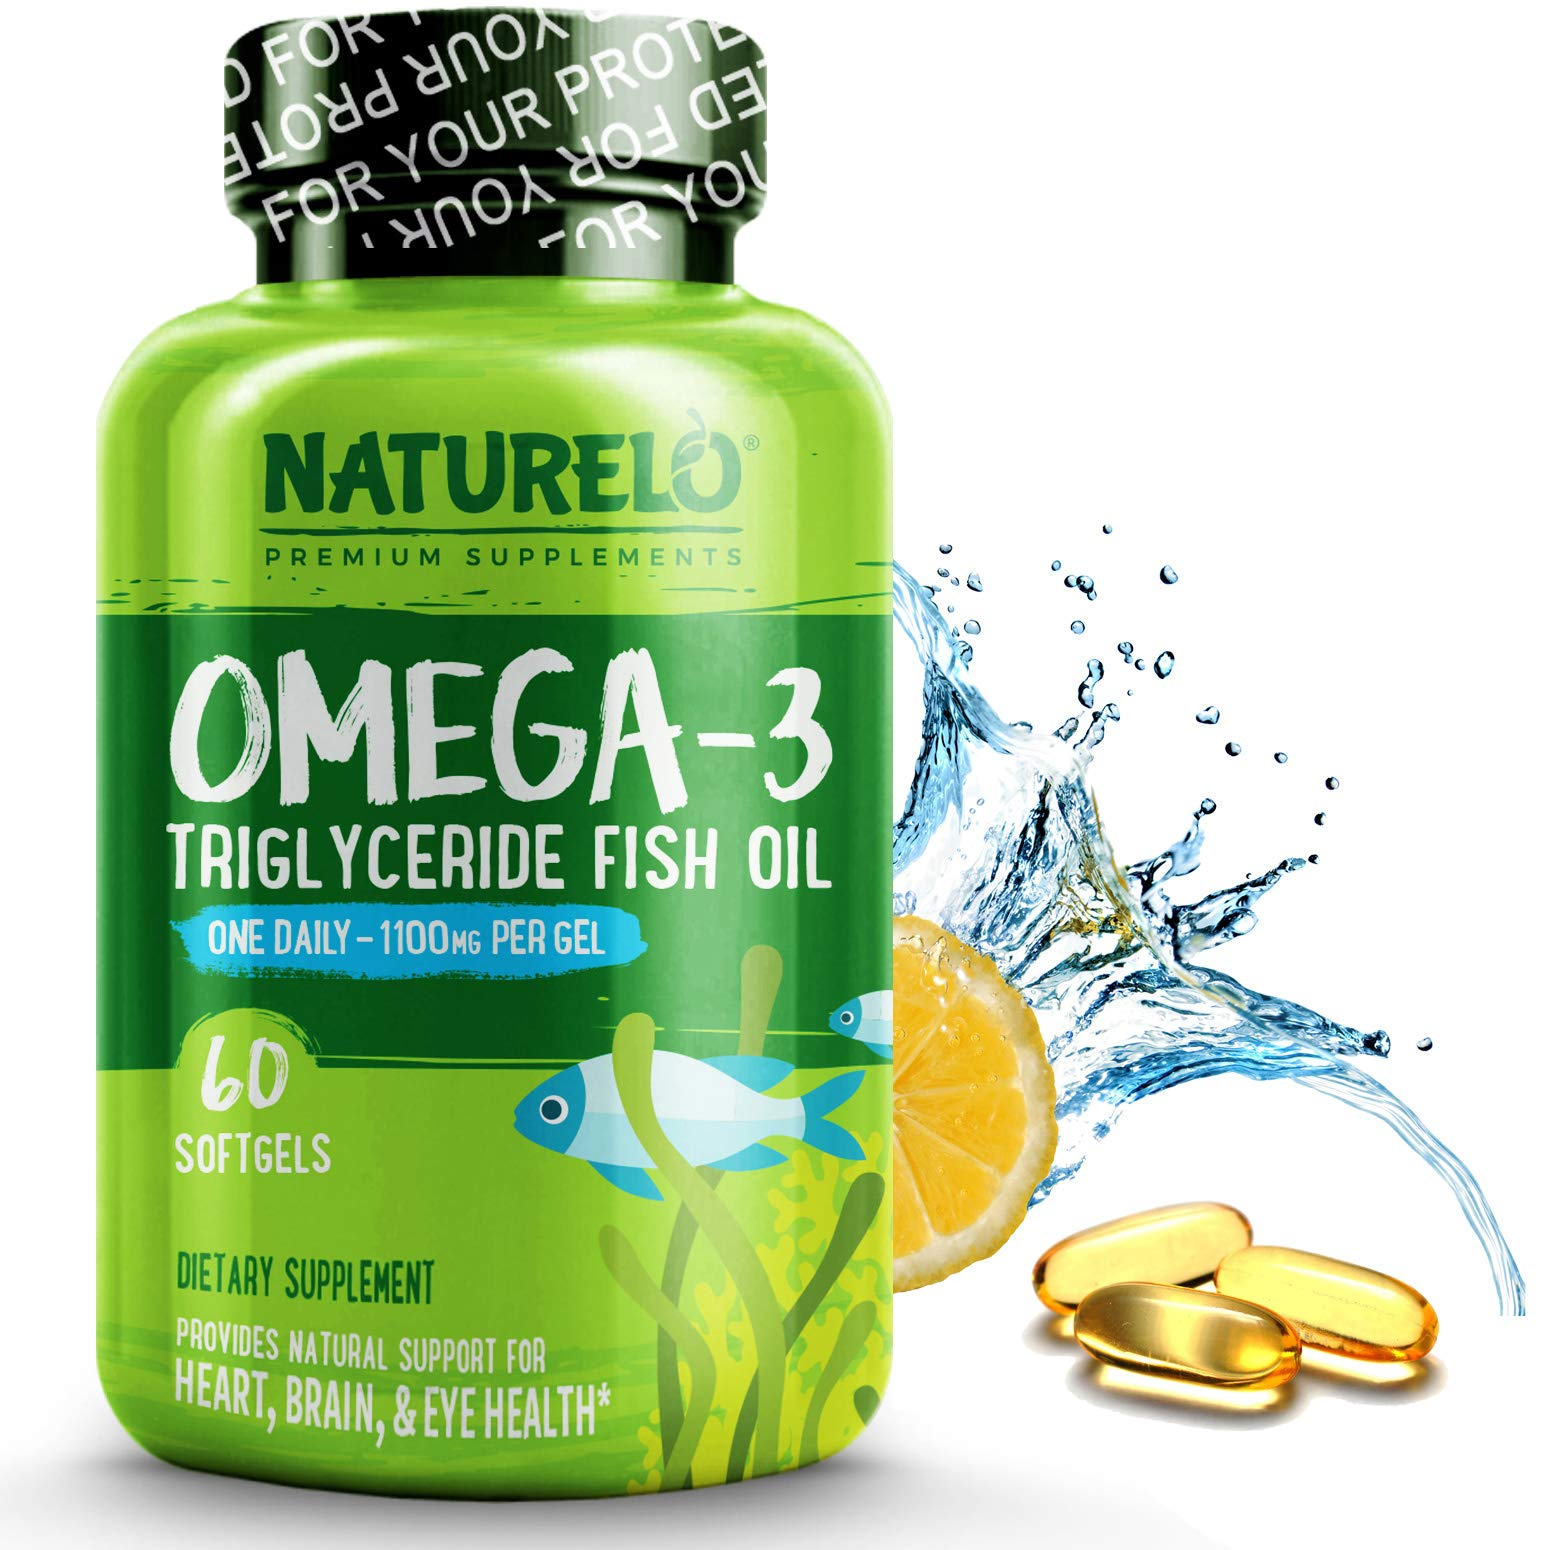 NATURELO Omega-3 Fish Oil - 1100 mg Triglyceride Omega 3 - High Strength DHA EPA Supplement - Best for Brain, Heart, Joint Health - No Burps - Lemon Flavor - 60 Softgels | 2 Month Supply by NATURELO